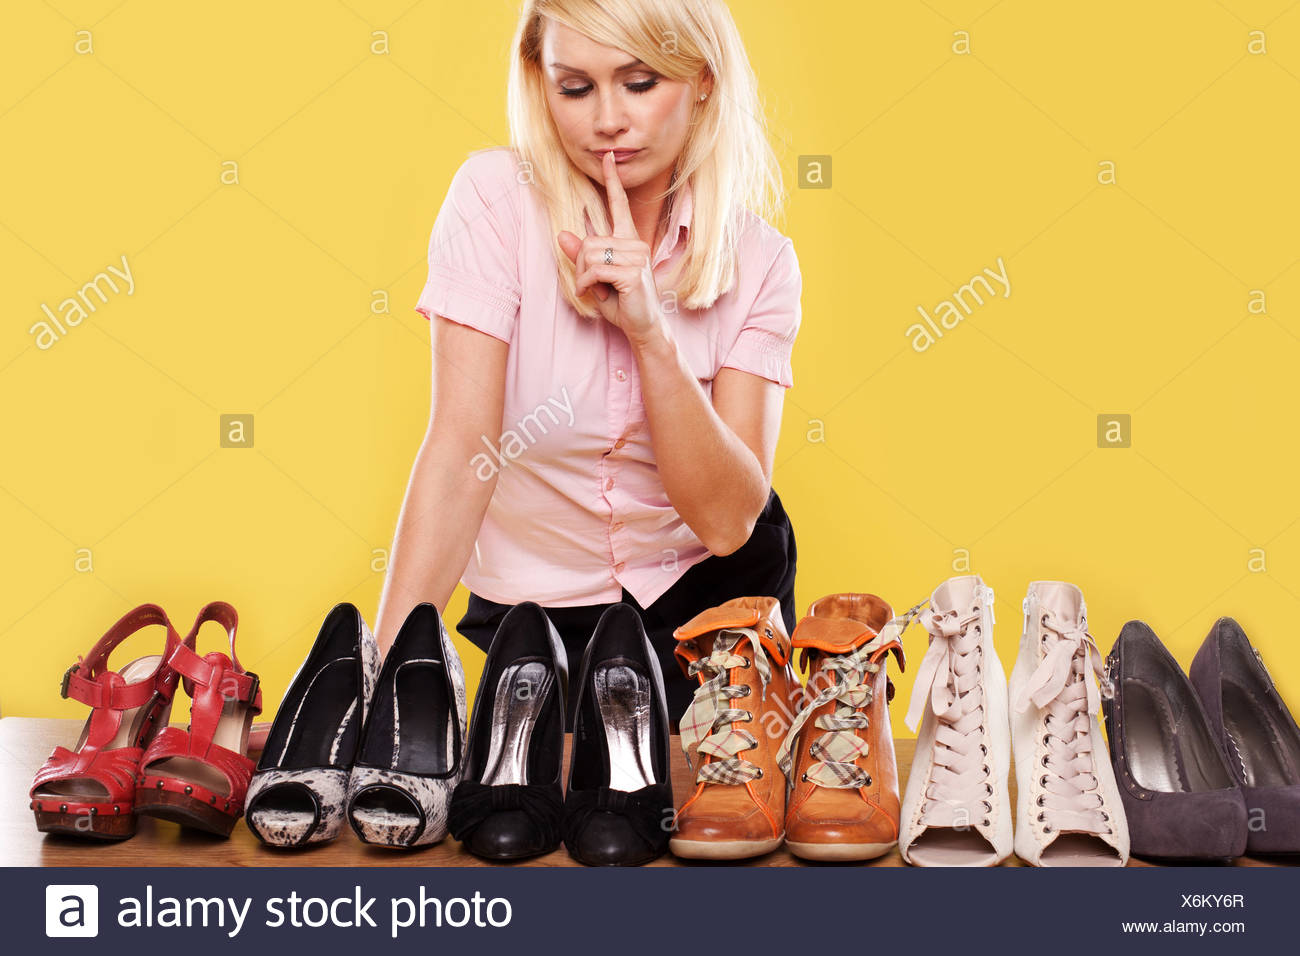 huge discount 419fb 7bb02 Blonde lady with a passion for shoes Stock Photo: 279492271 ...